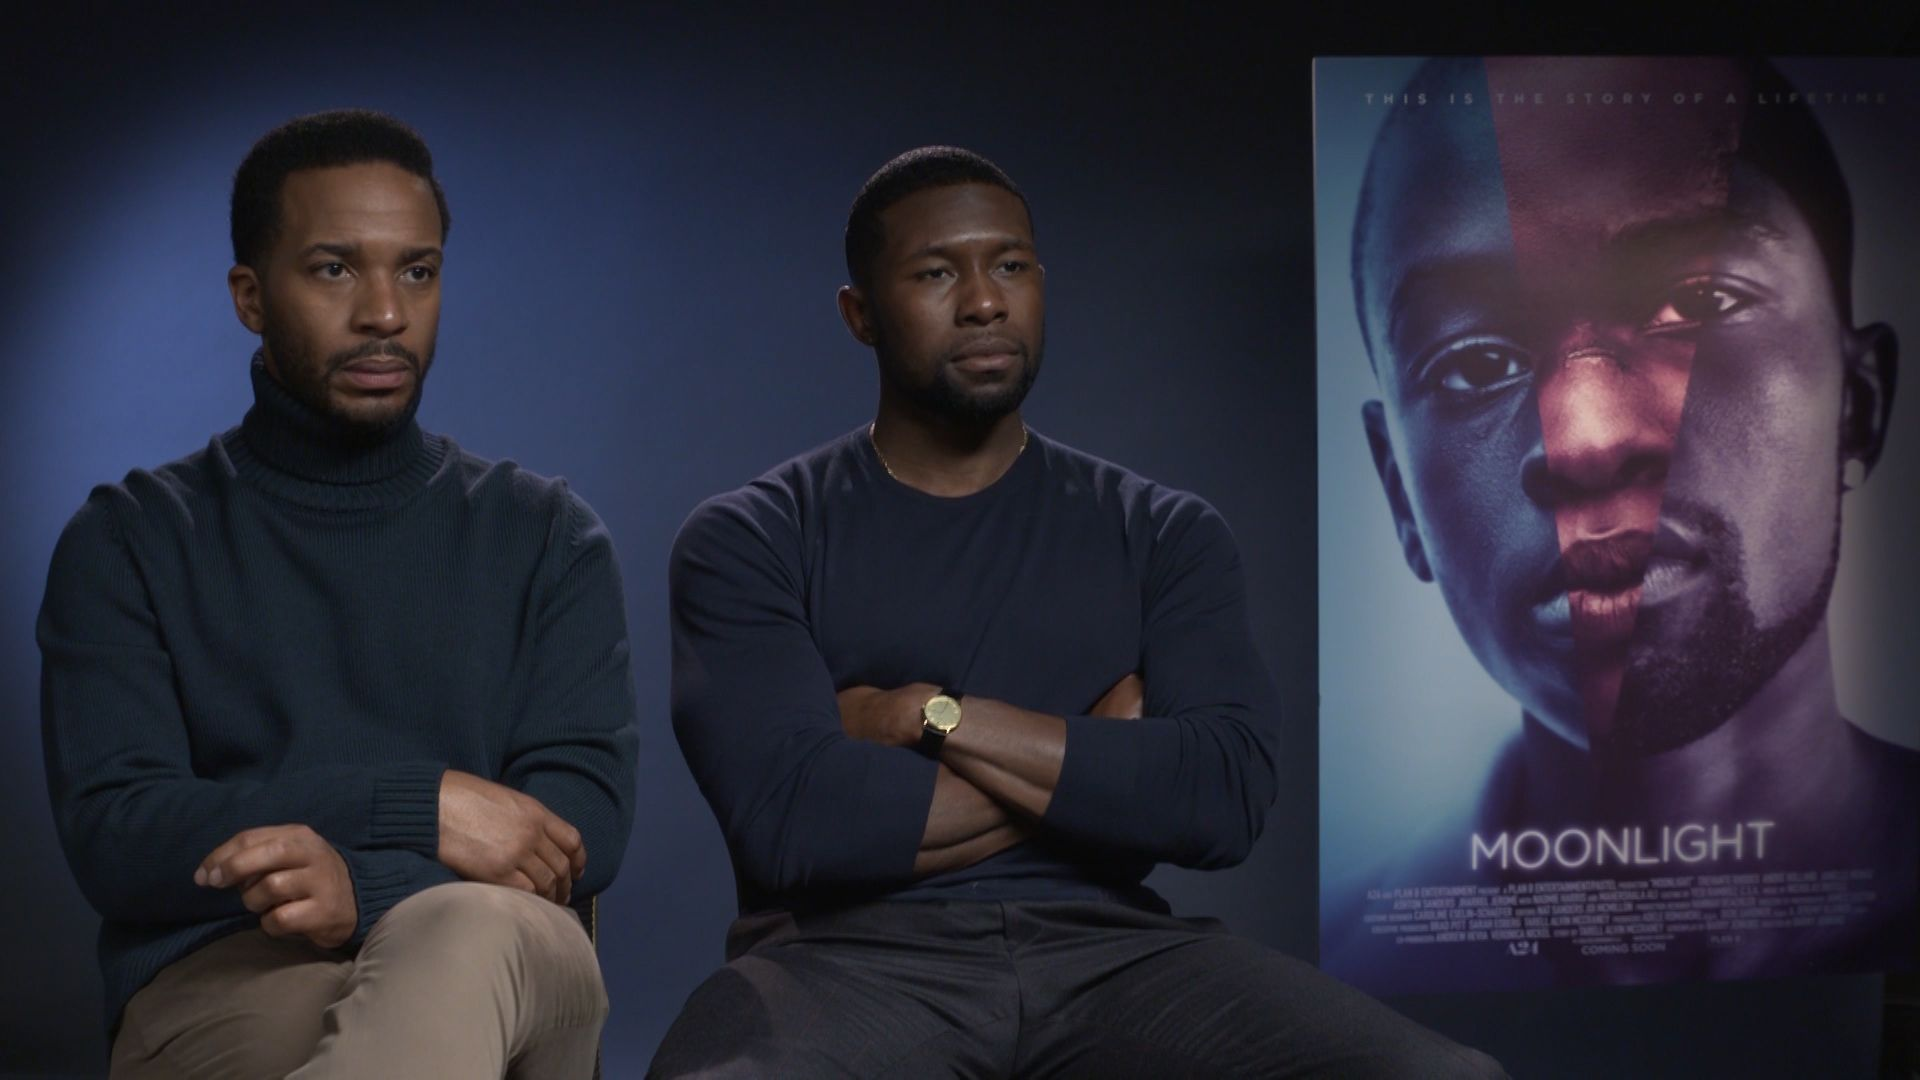 Moonlight - Trevante Rhodes and Andre Holland